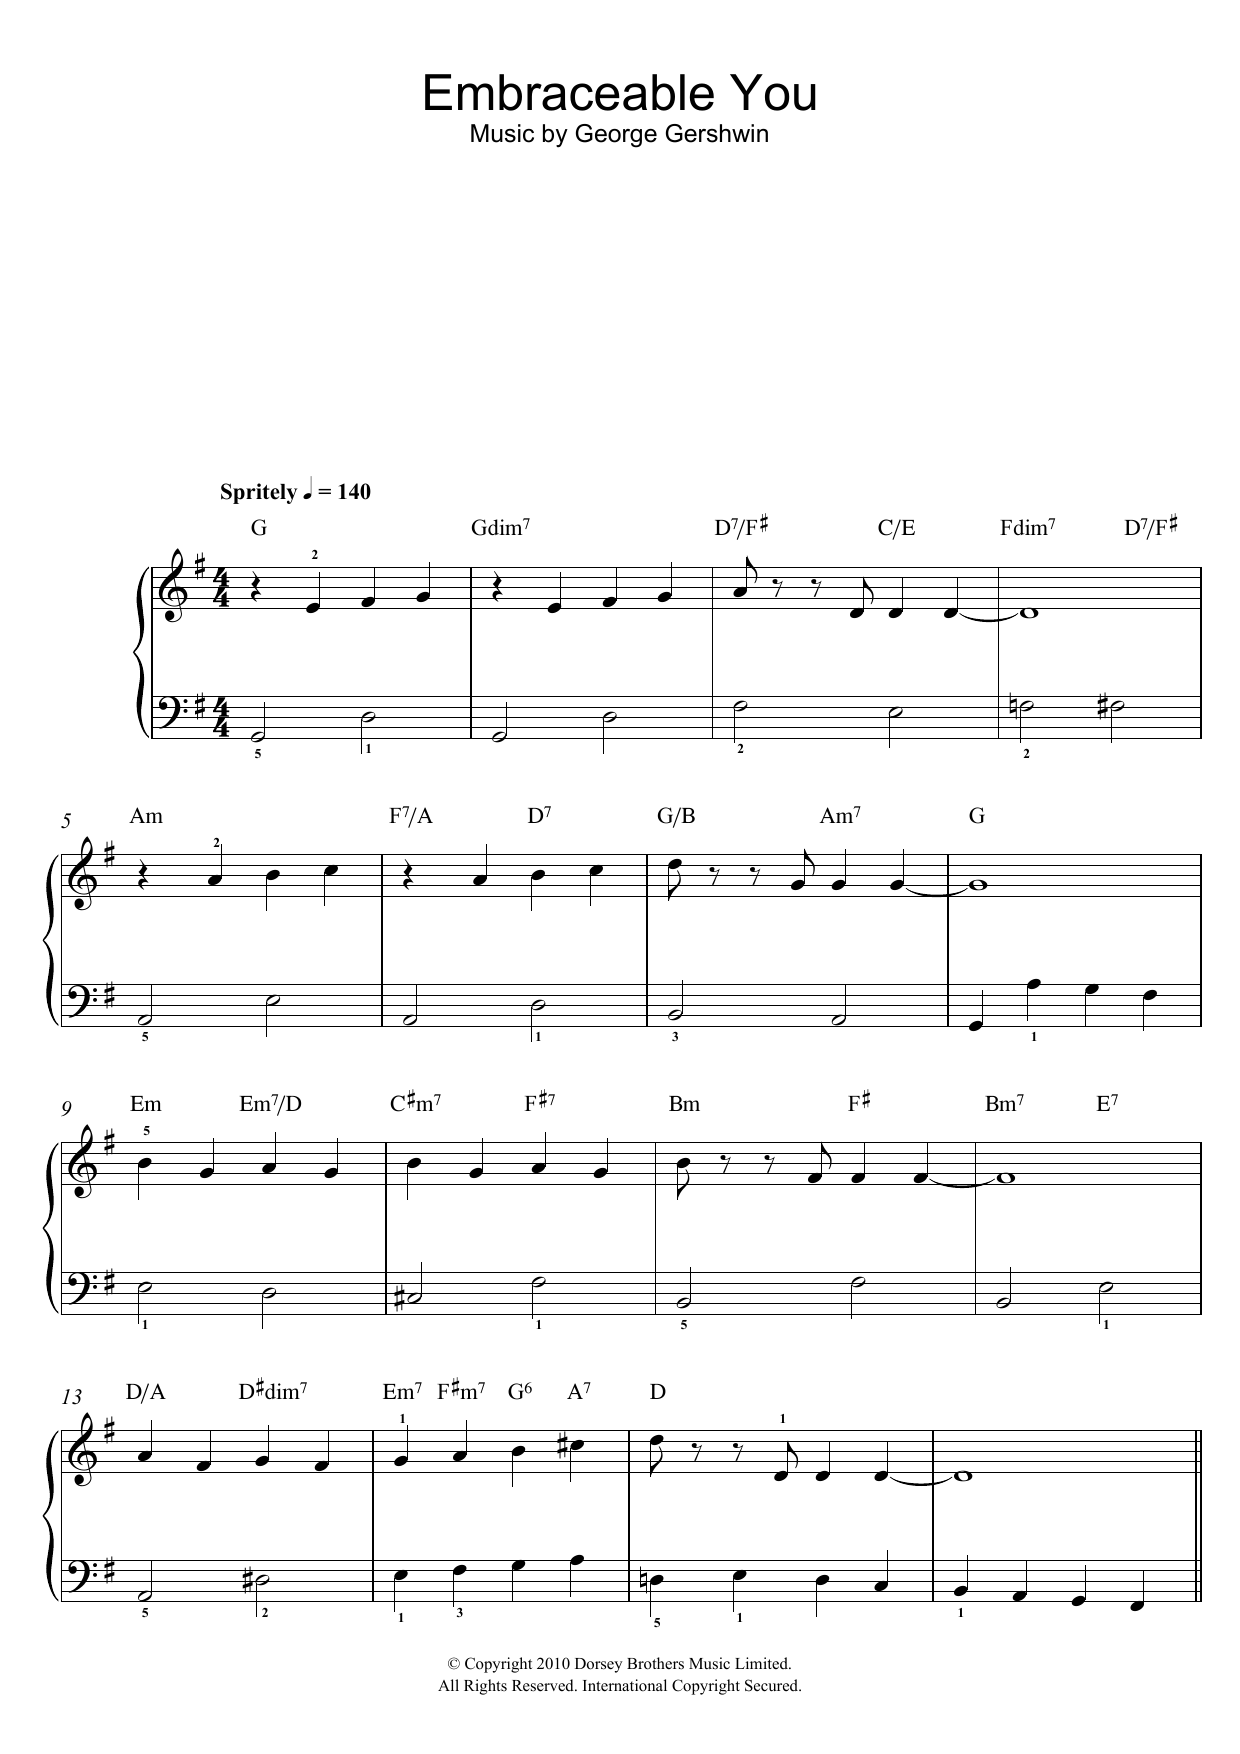 Embraceable You sheet music for piano solo (chords) by George Gershwin